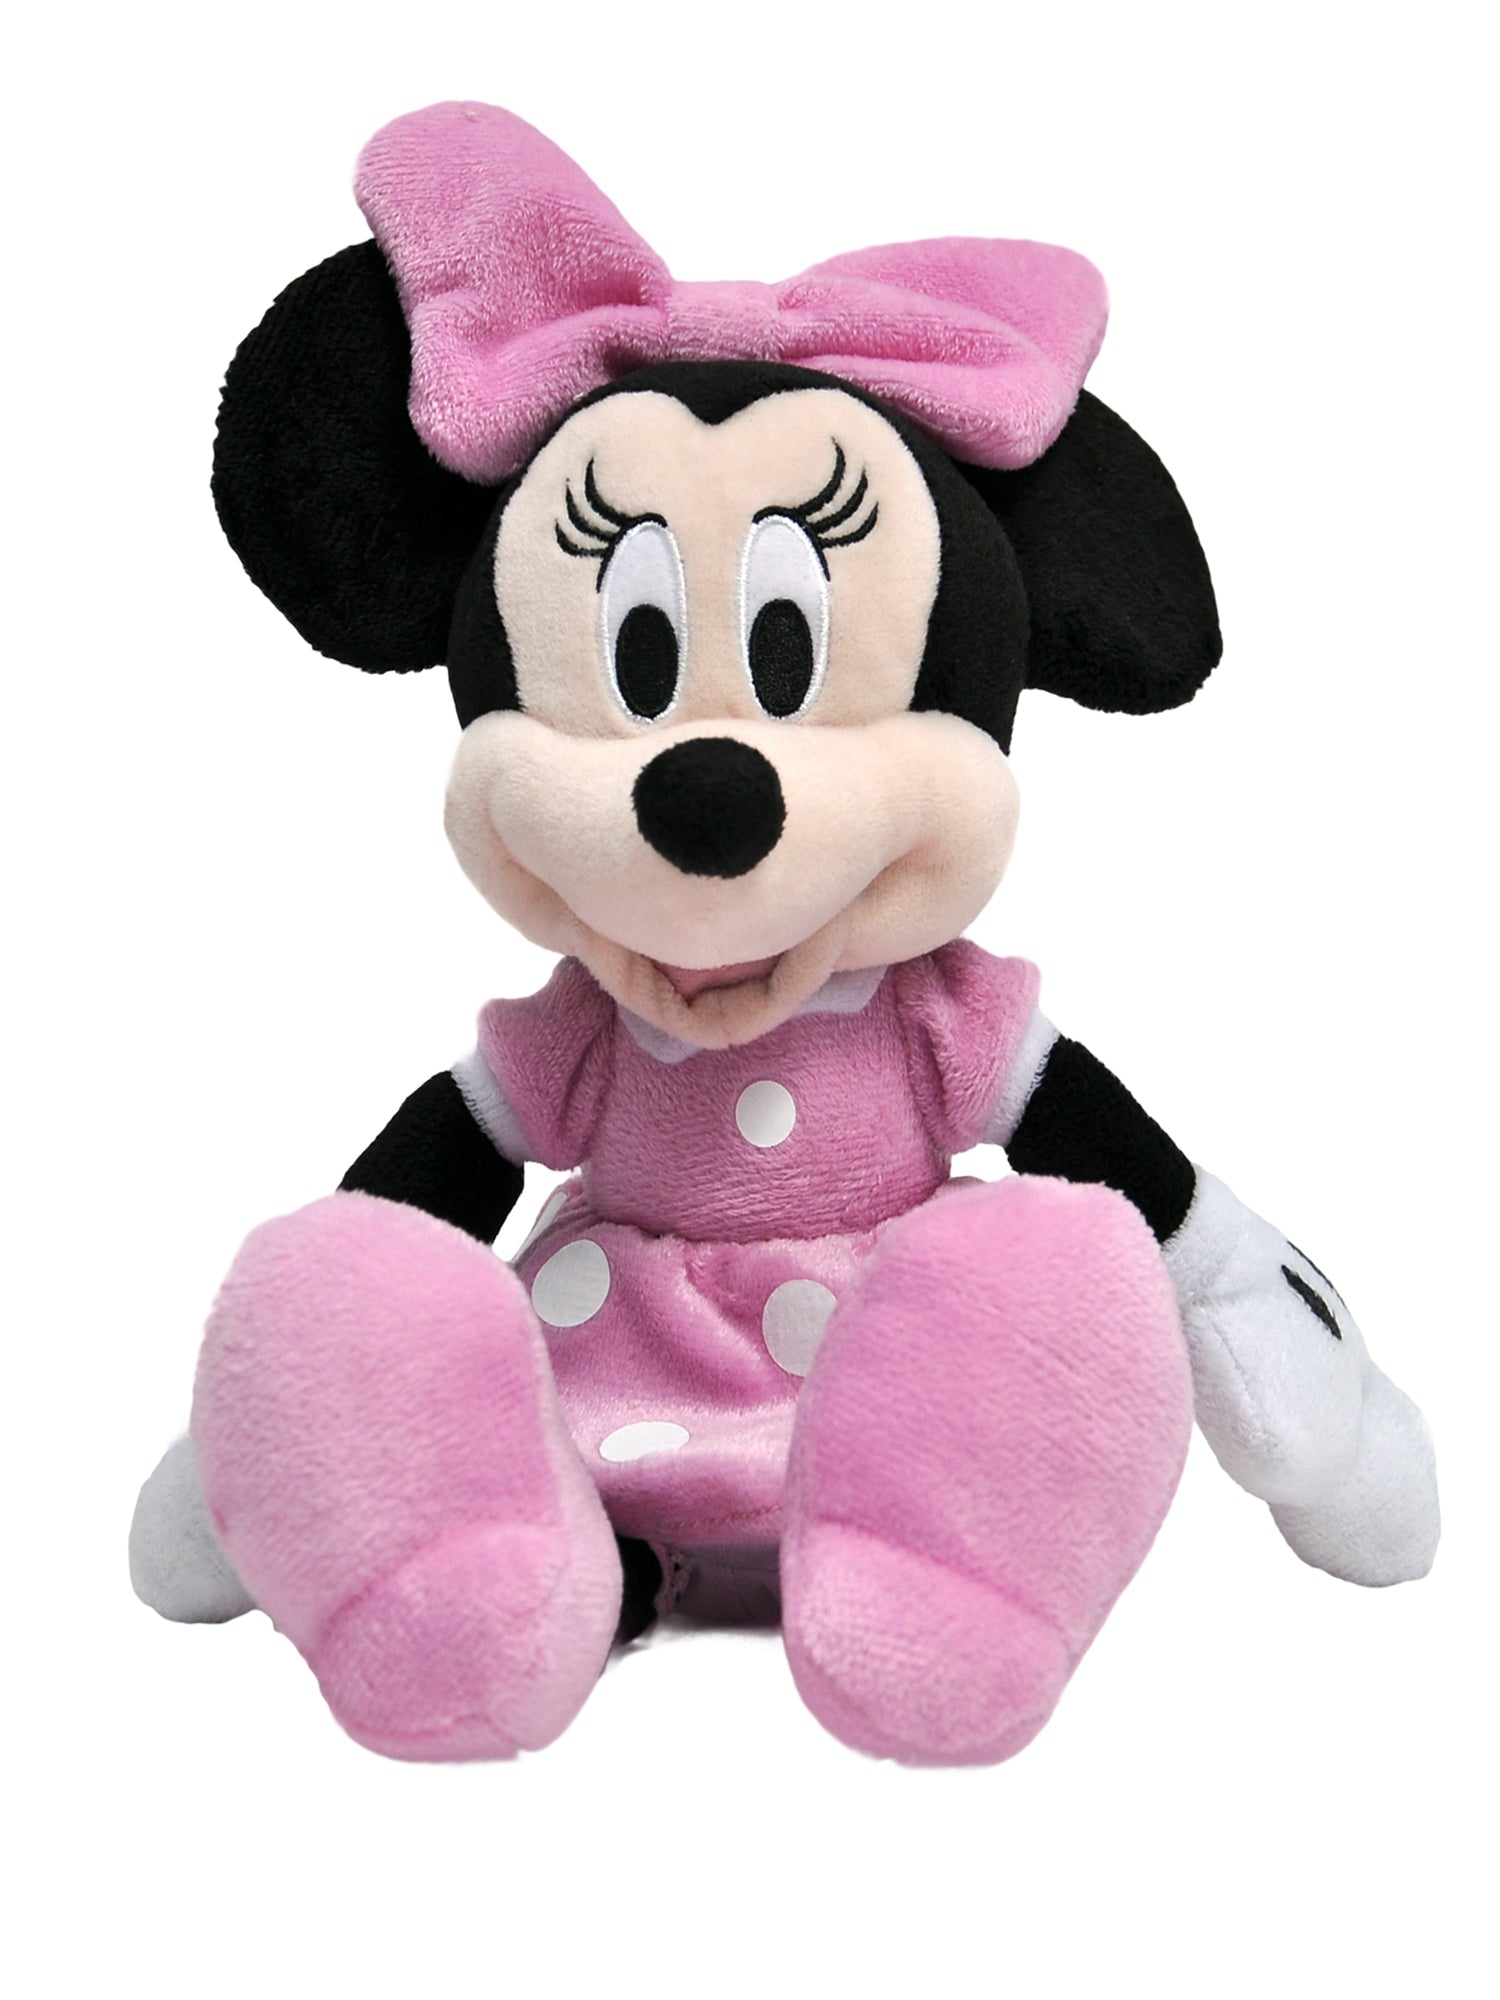 "Minnie Mouse Plush Doll 11"" Pink Toy"